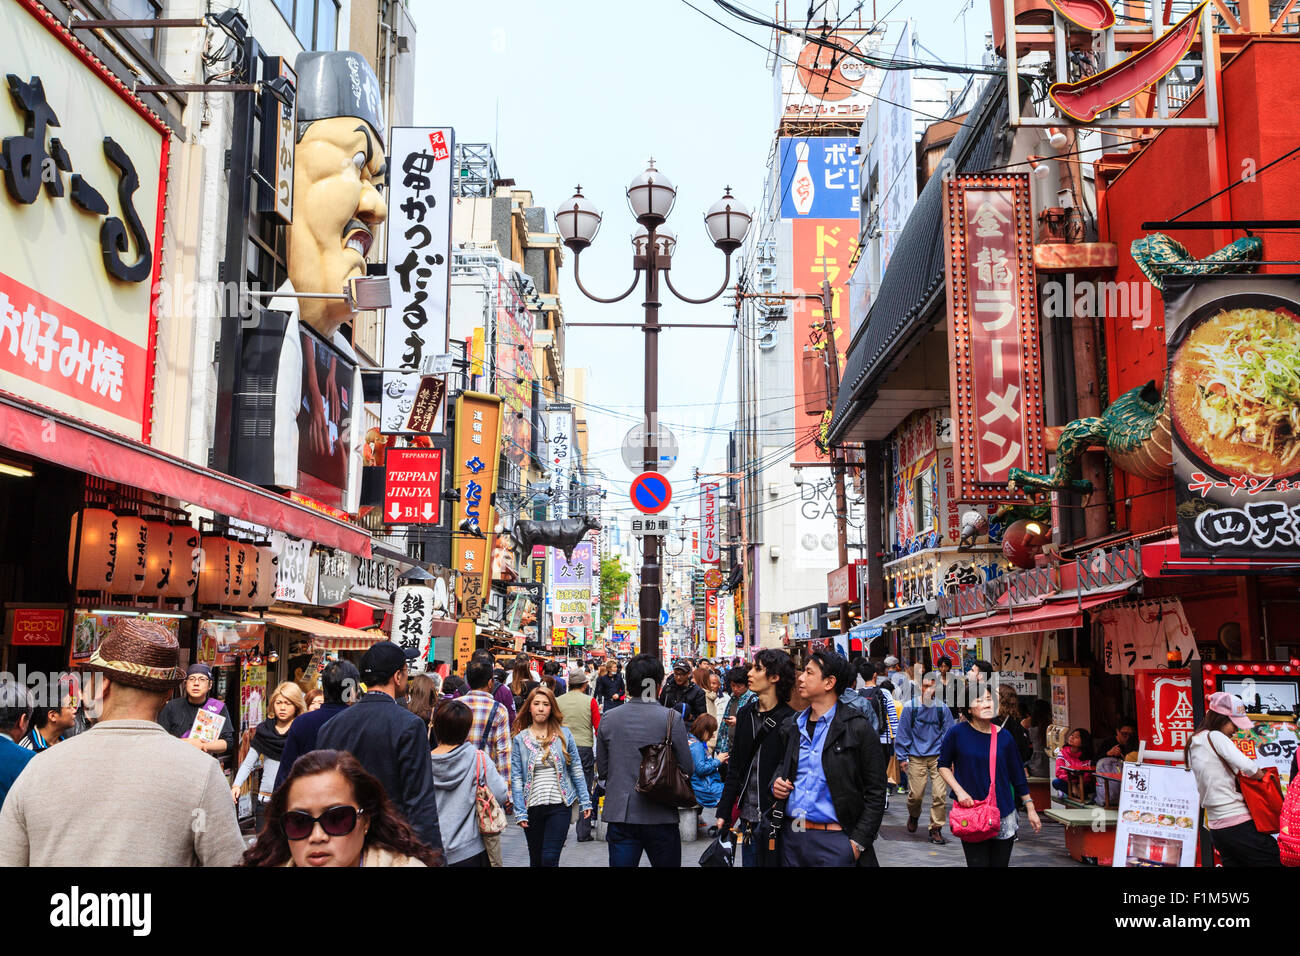 Japan, Osaka. Dotonbori. View along famous street with masses of signs on sides of buildings. Street crowded with - Stock Image